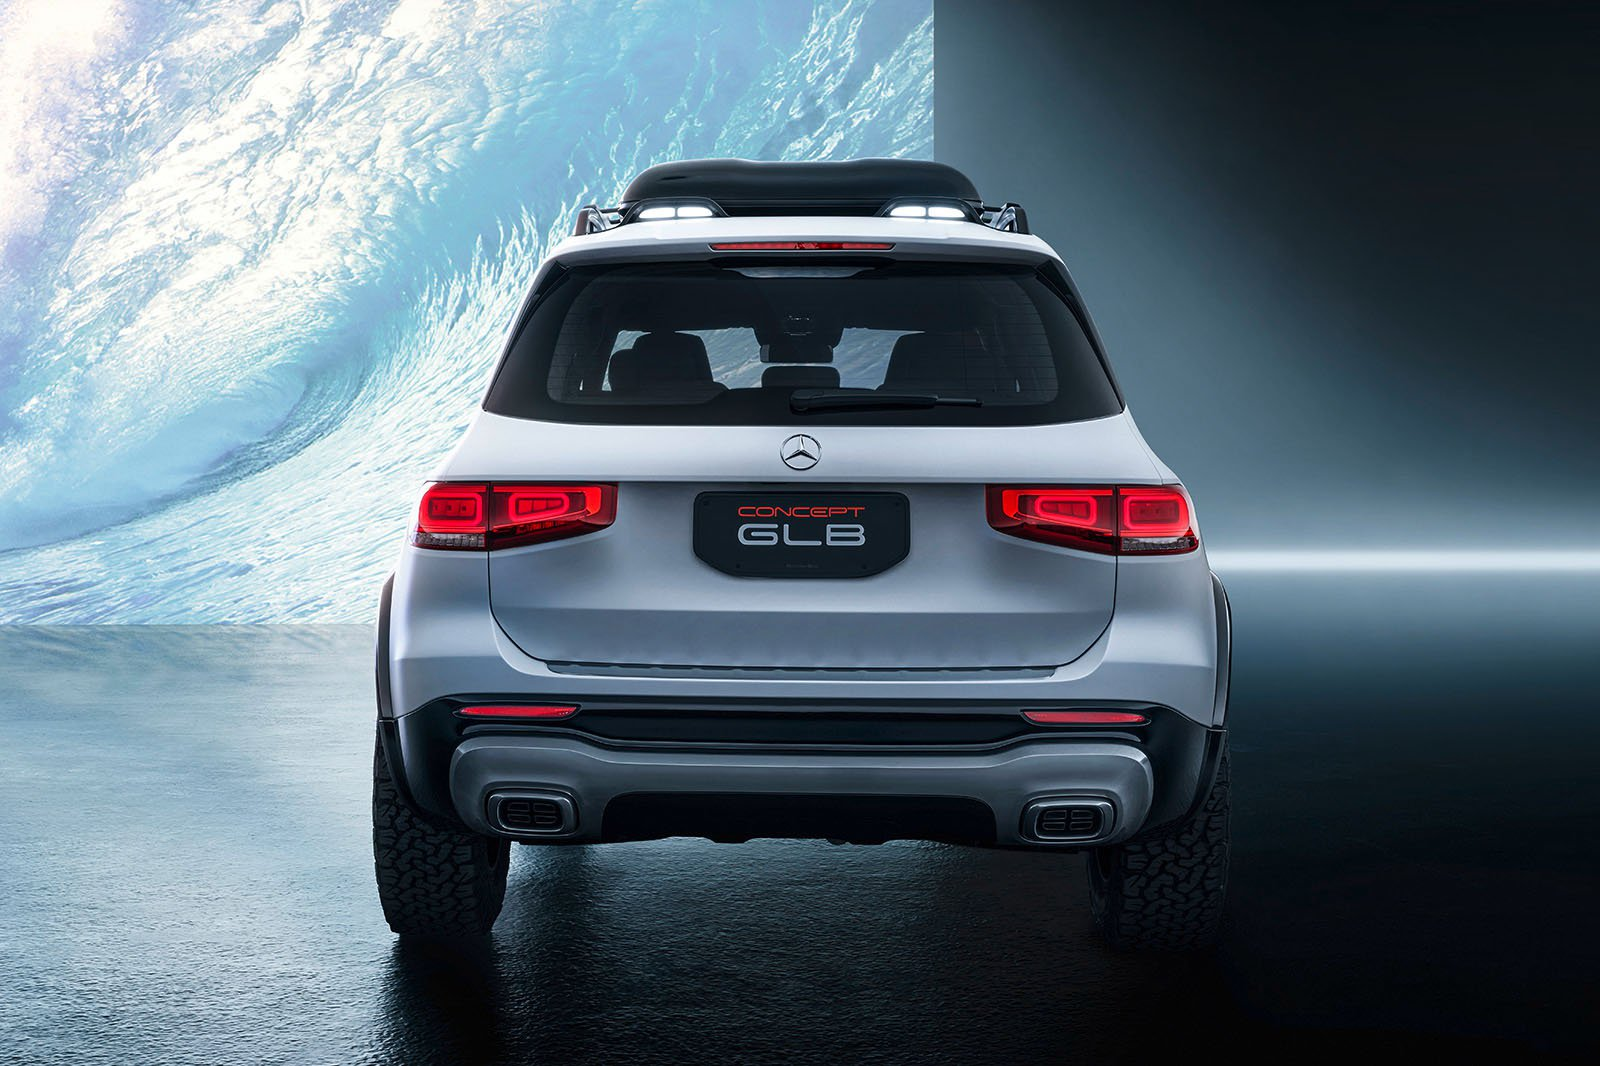 Mercedes GLB concept rear